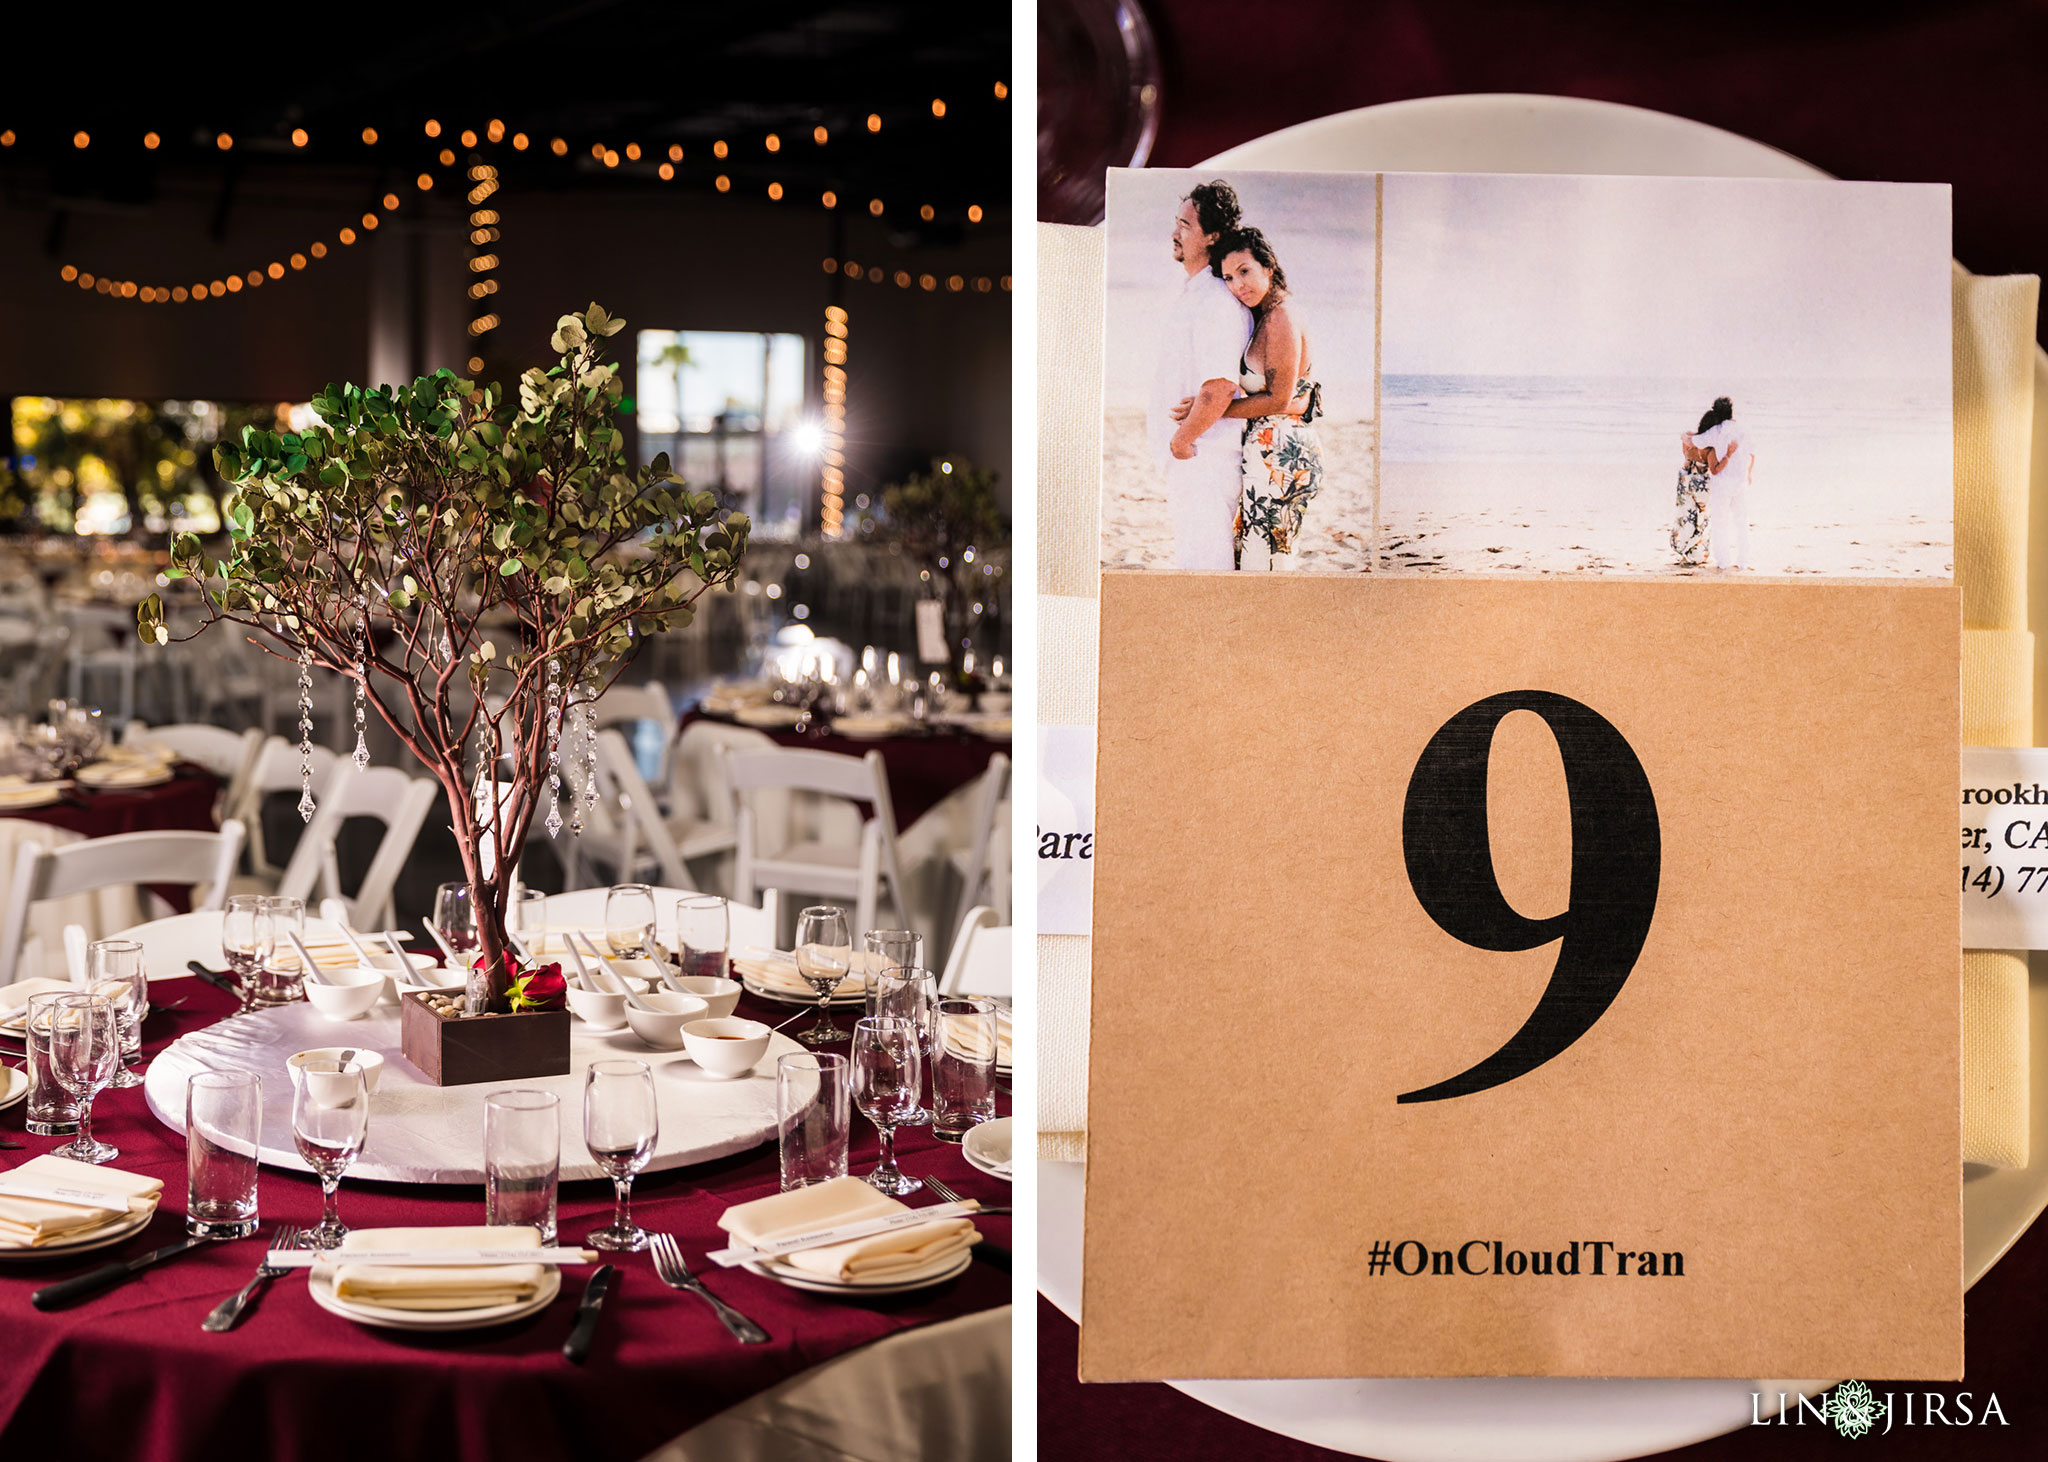 24 business expo event center orange county wedding reception photography